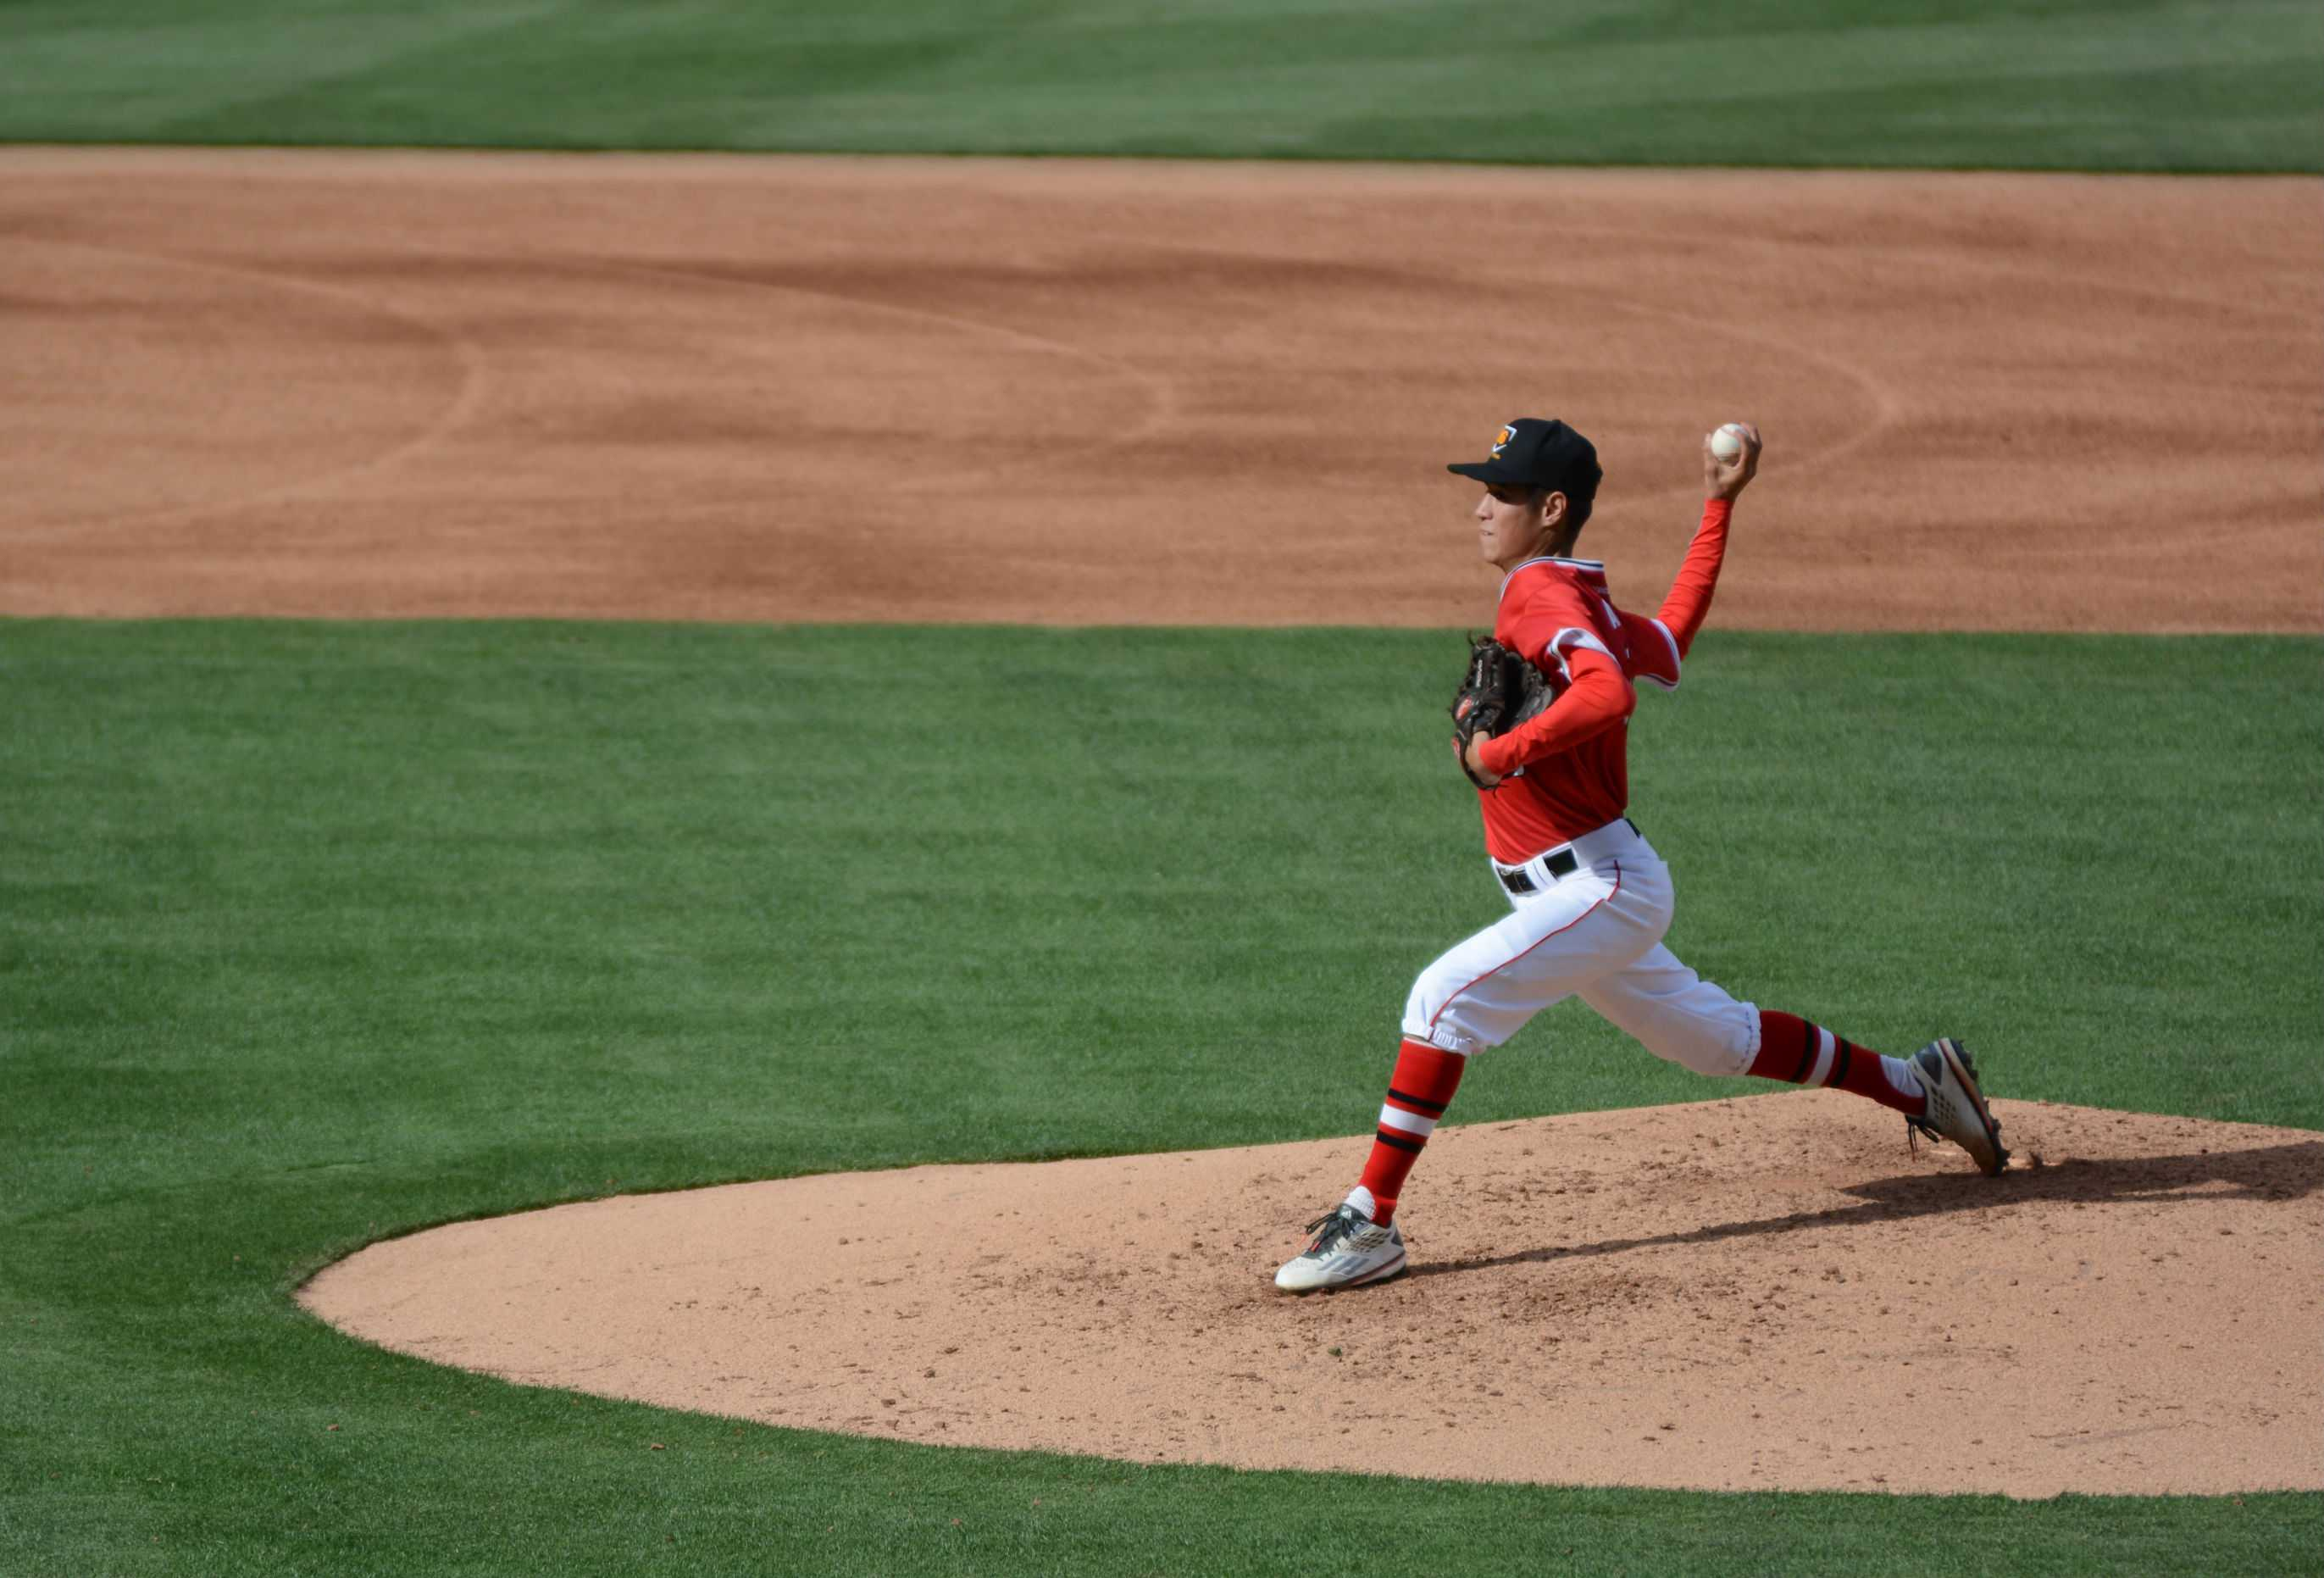 Senior Ben Angotti pitching at Angel's Stadium on Mar. 22.